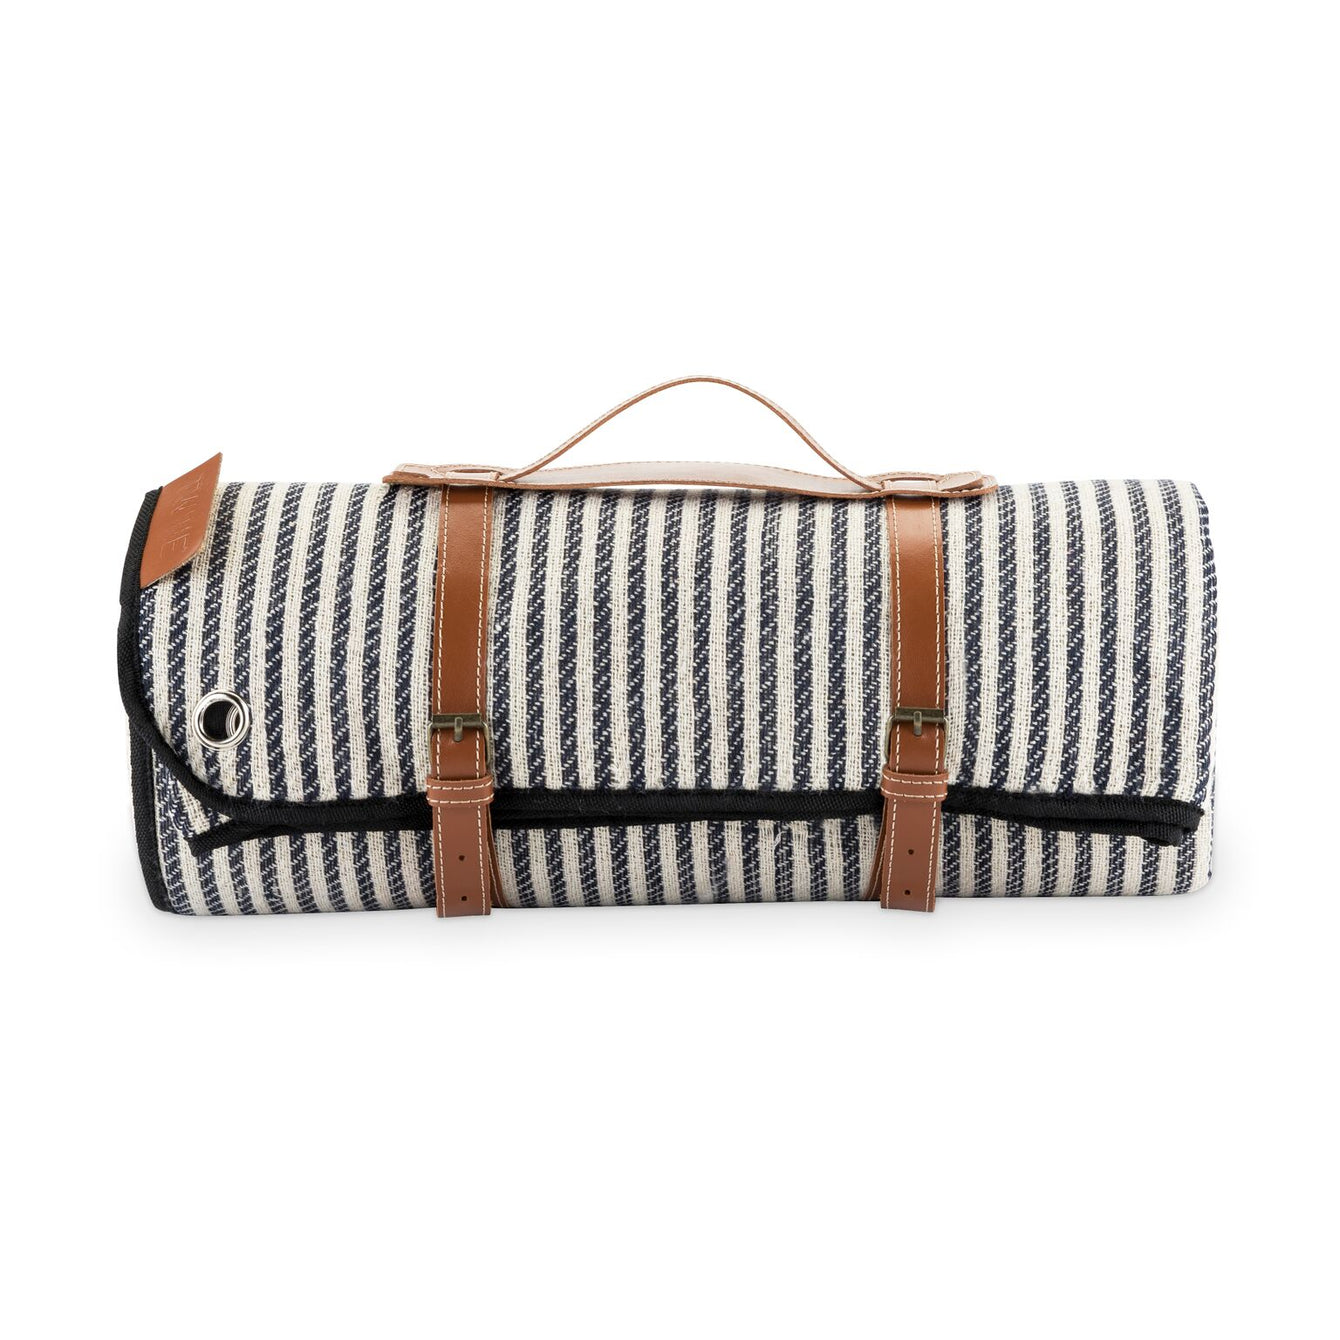 Seaside Picnic Blanket Set-Home - Travel + Outdoors - Beach + Picnic Blankets-TWINE-Peccadilly